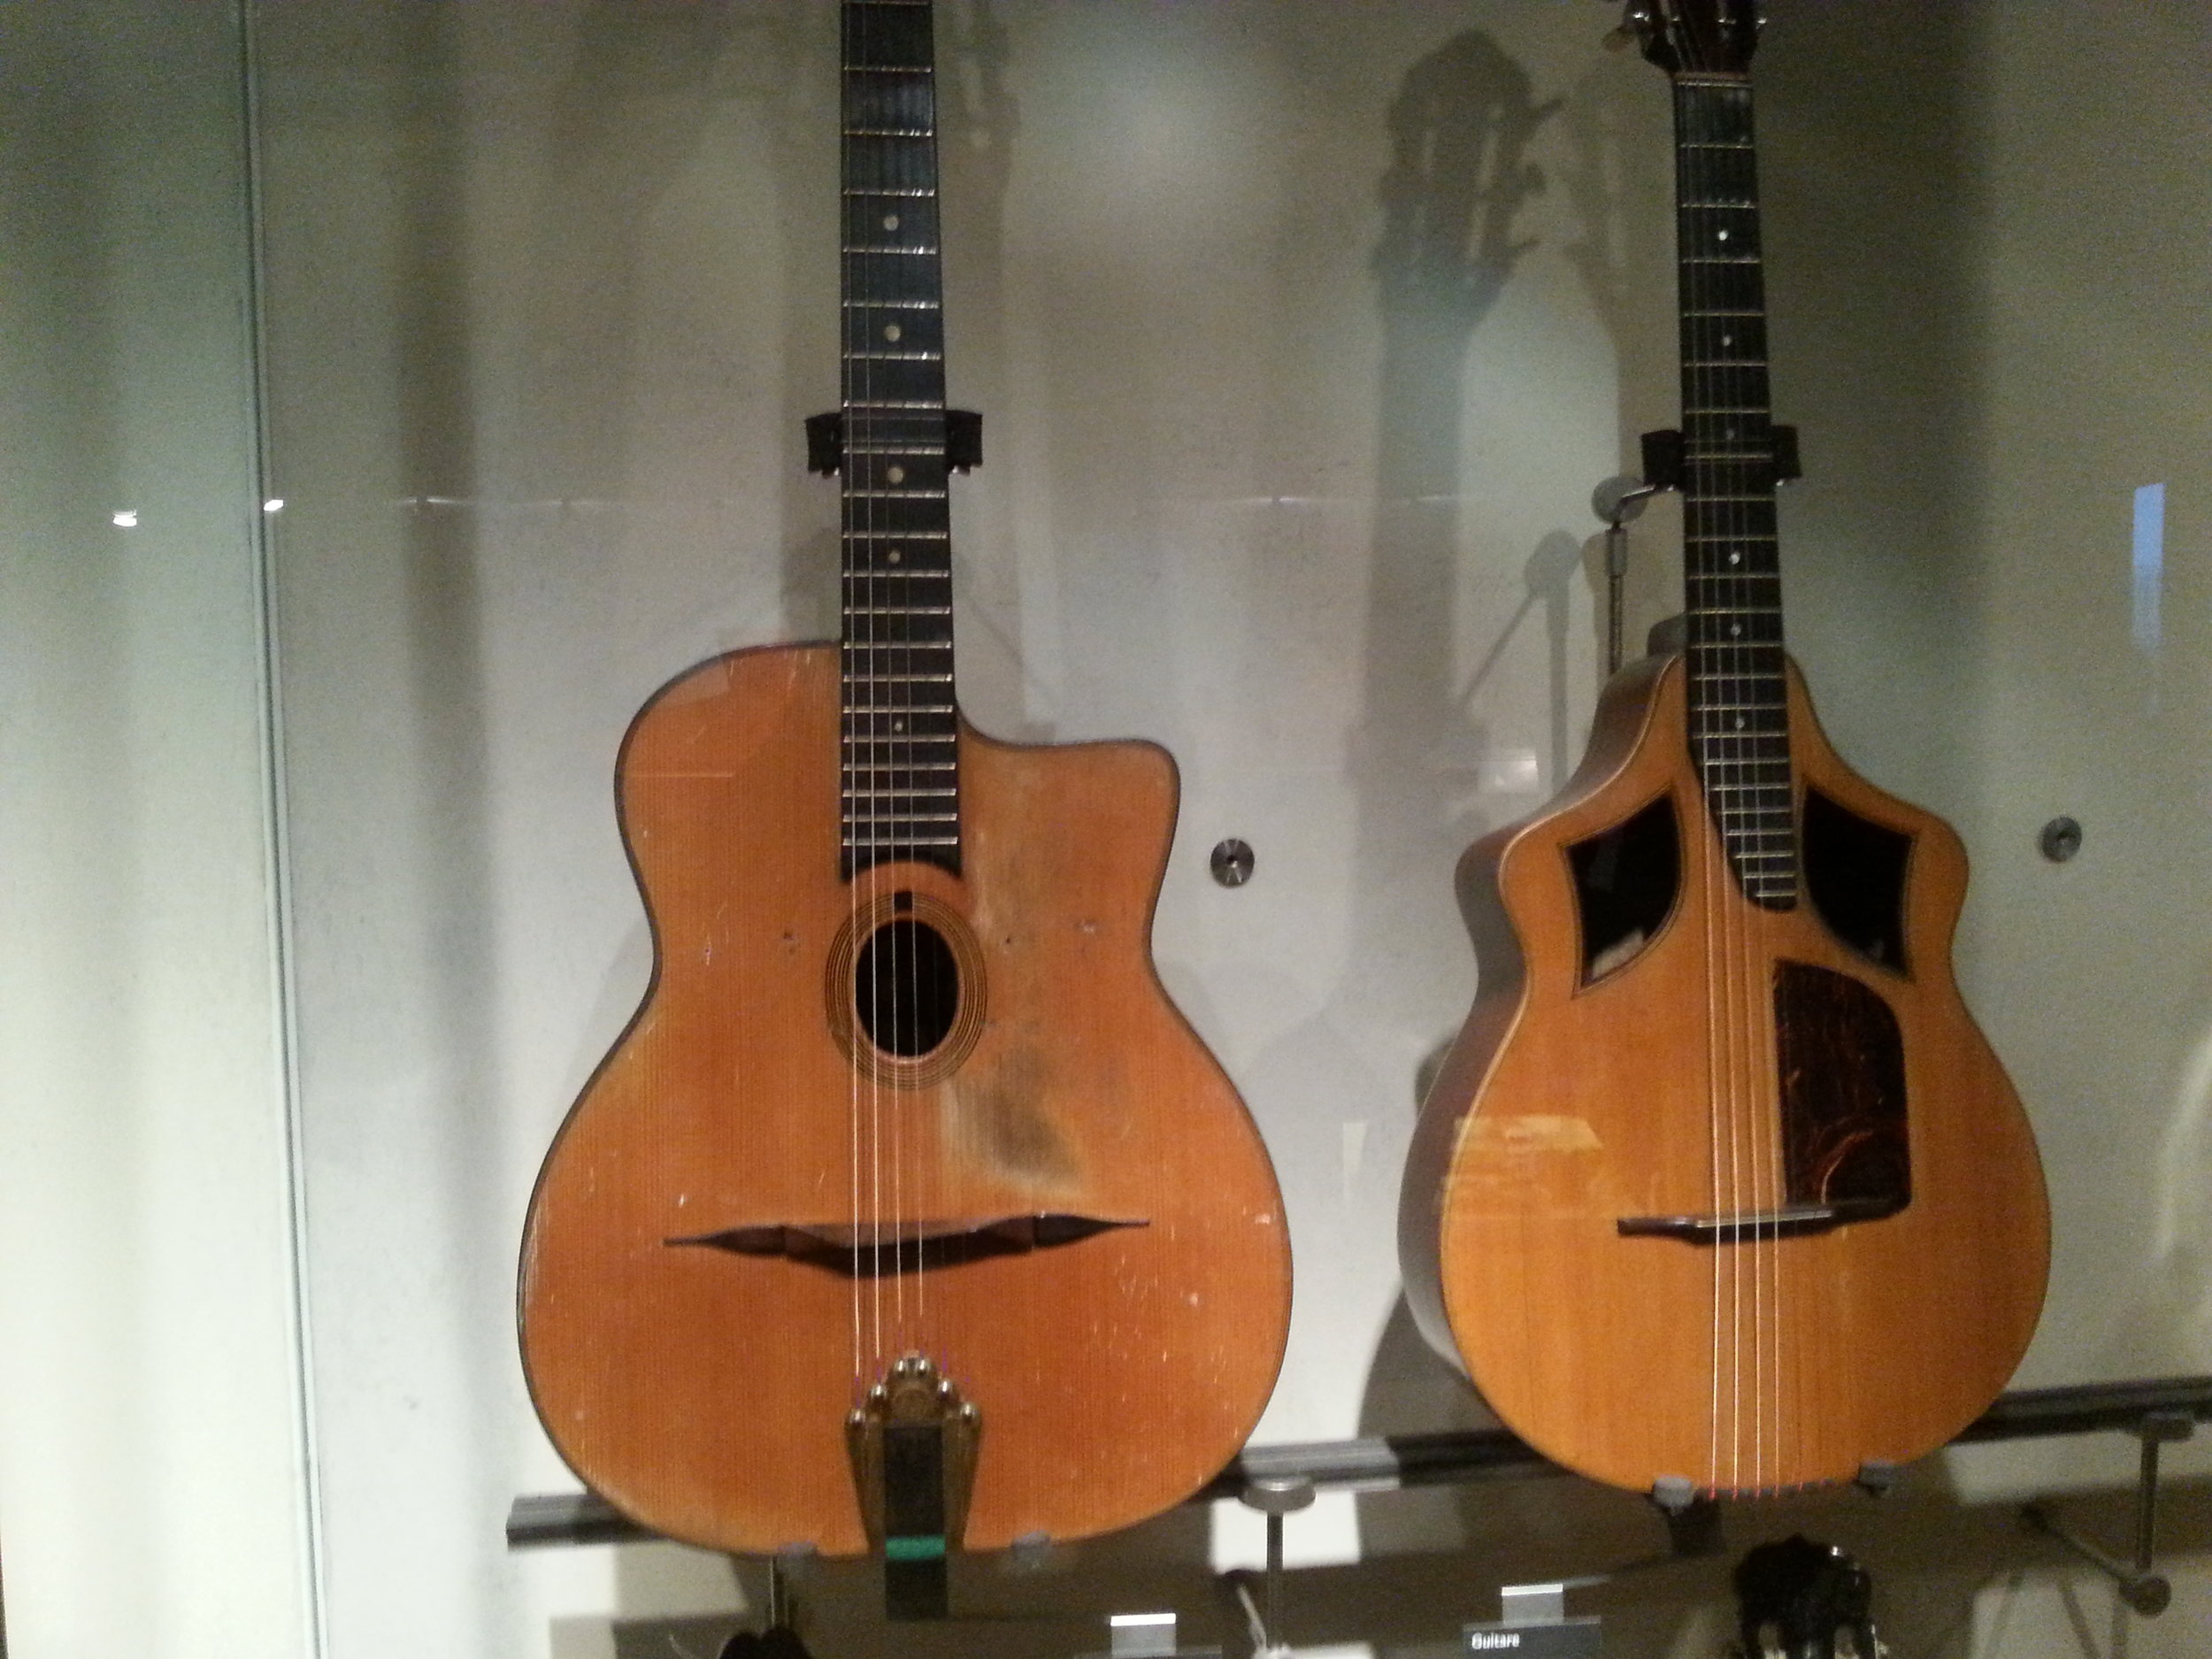 Here we see some cool Gipsy guitars!